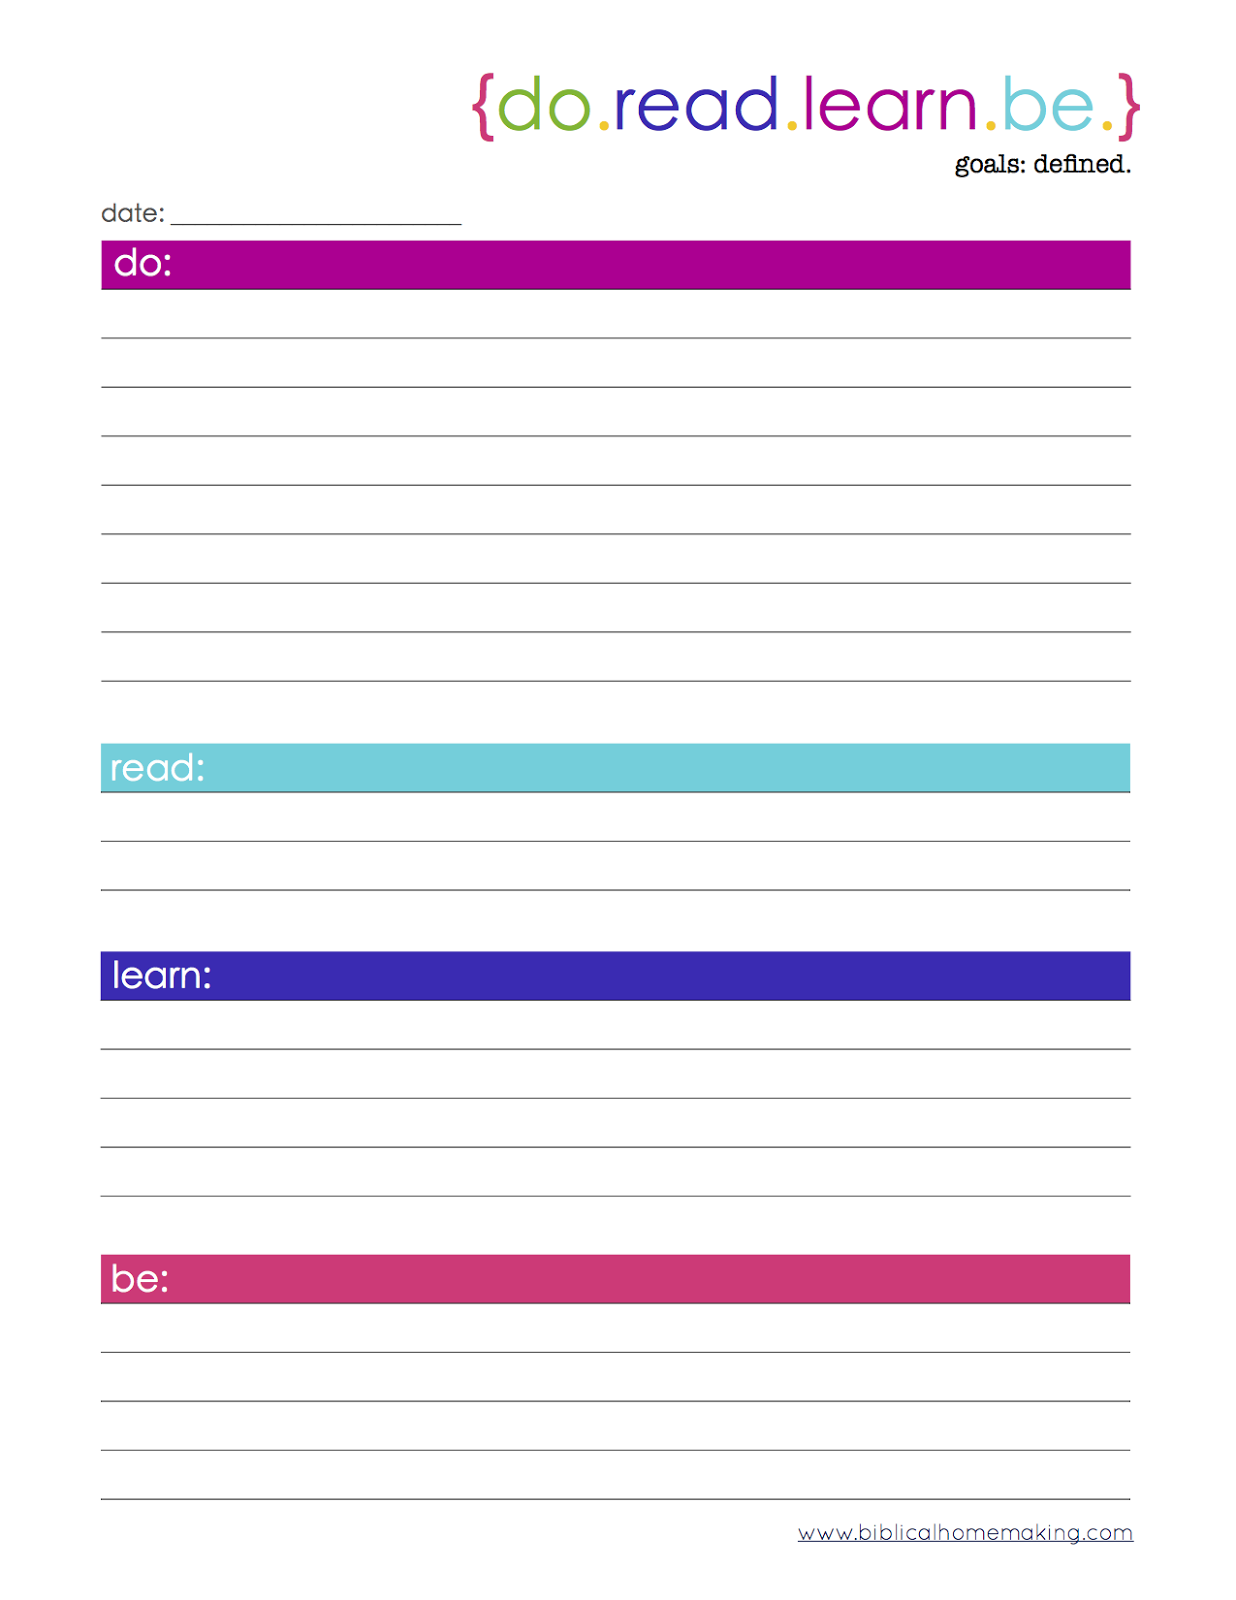 Do Read Learn Be Goals Menu Plans This Week